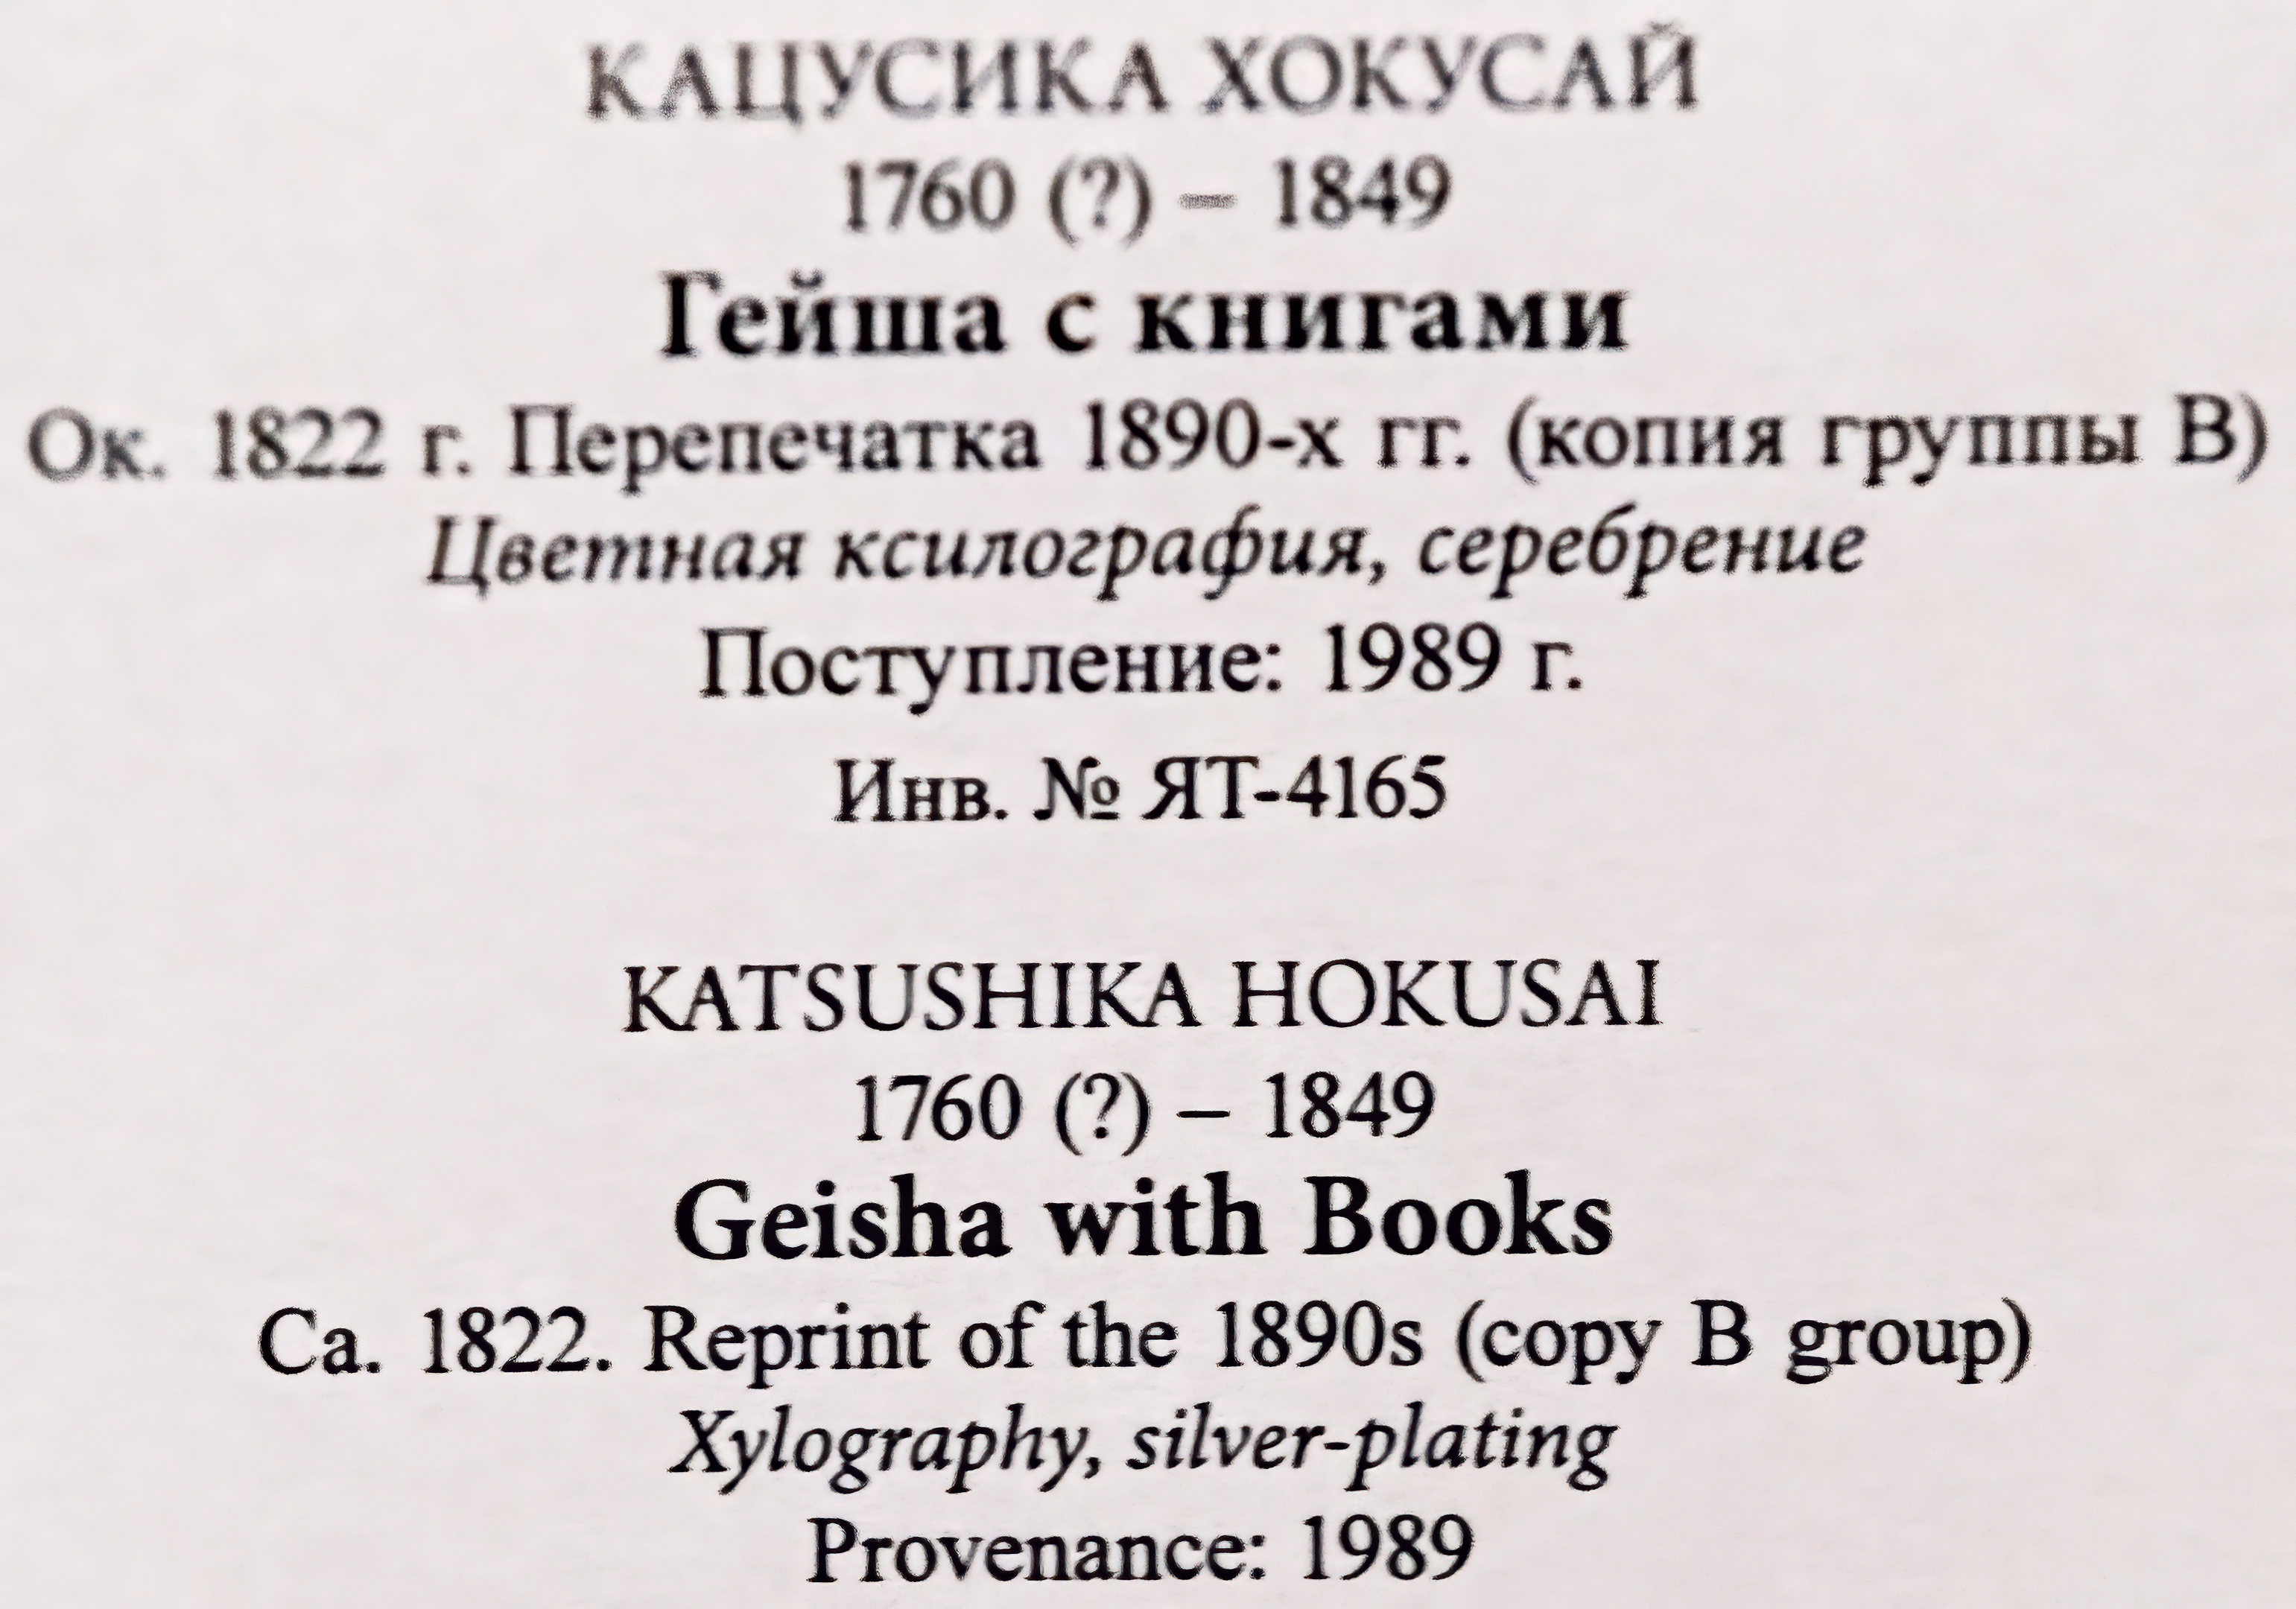 geisha with books description russia hokusai-denoise